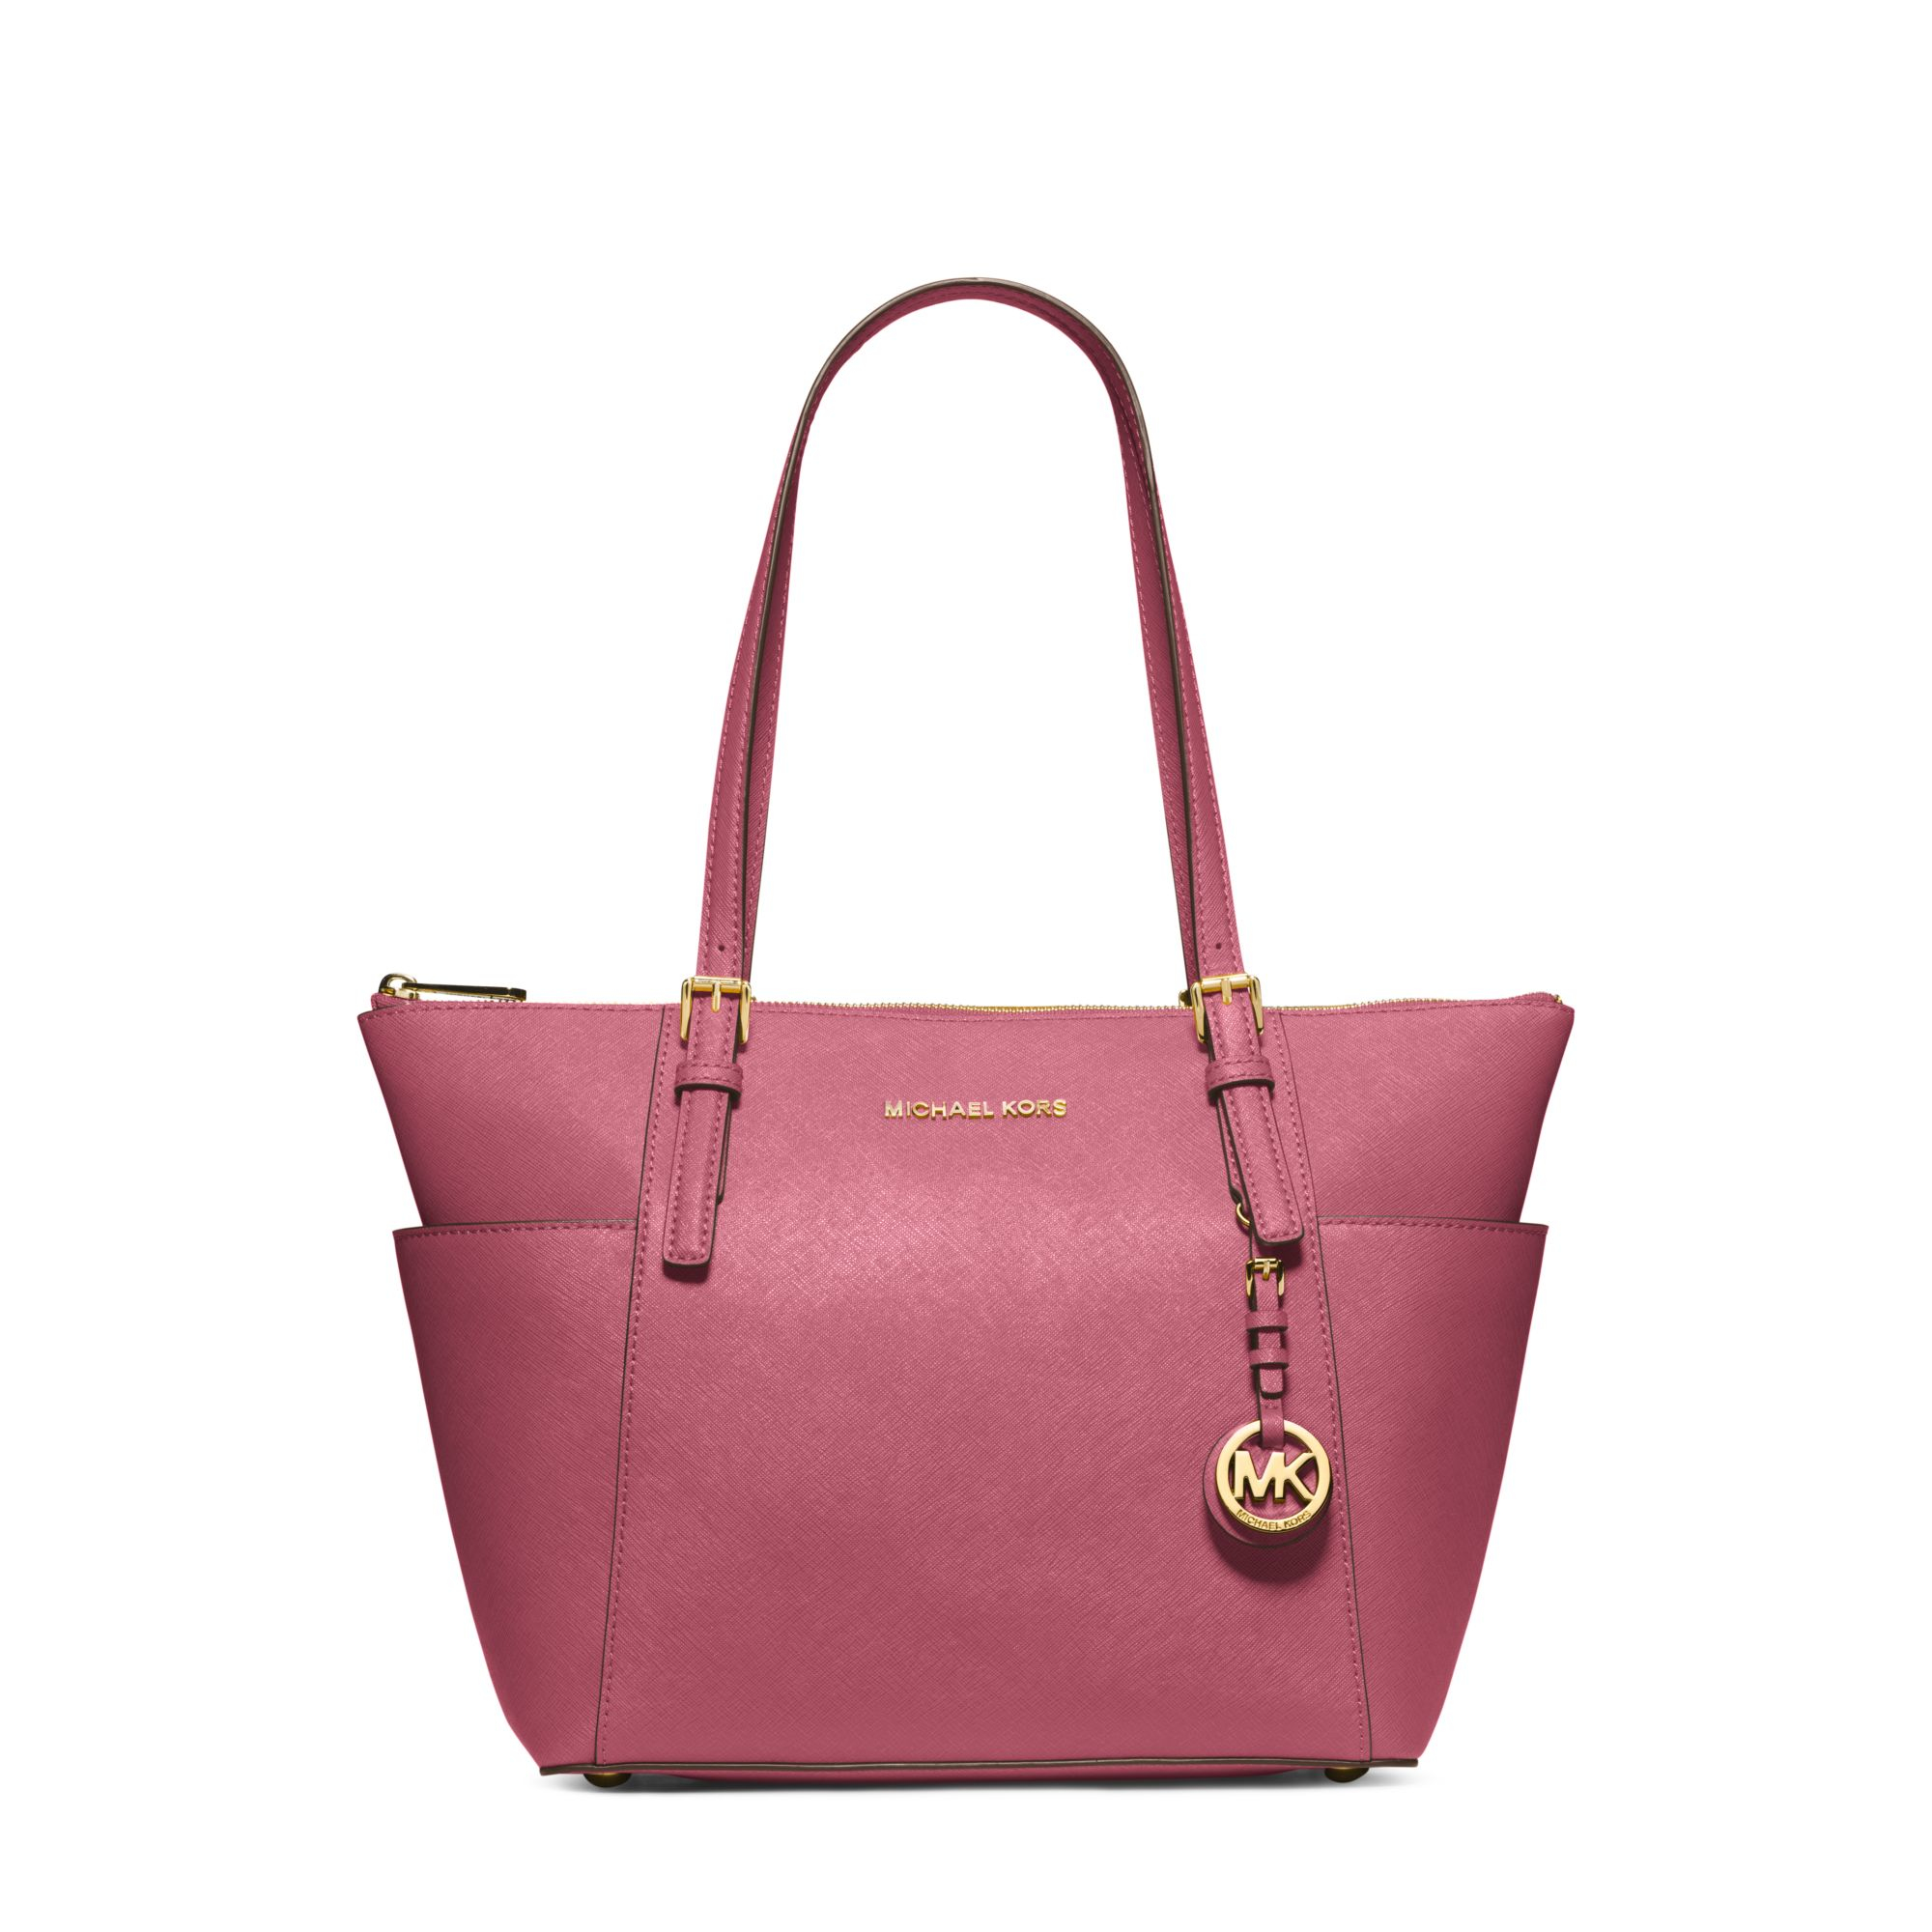 michael kors jet set top zip saffiano leather tote in pink. Black Bedroom Furniture Sets. Home Design Ideas